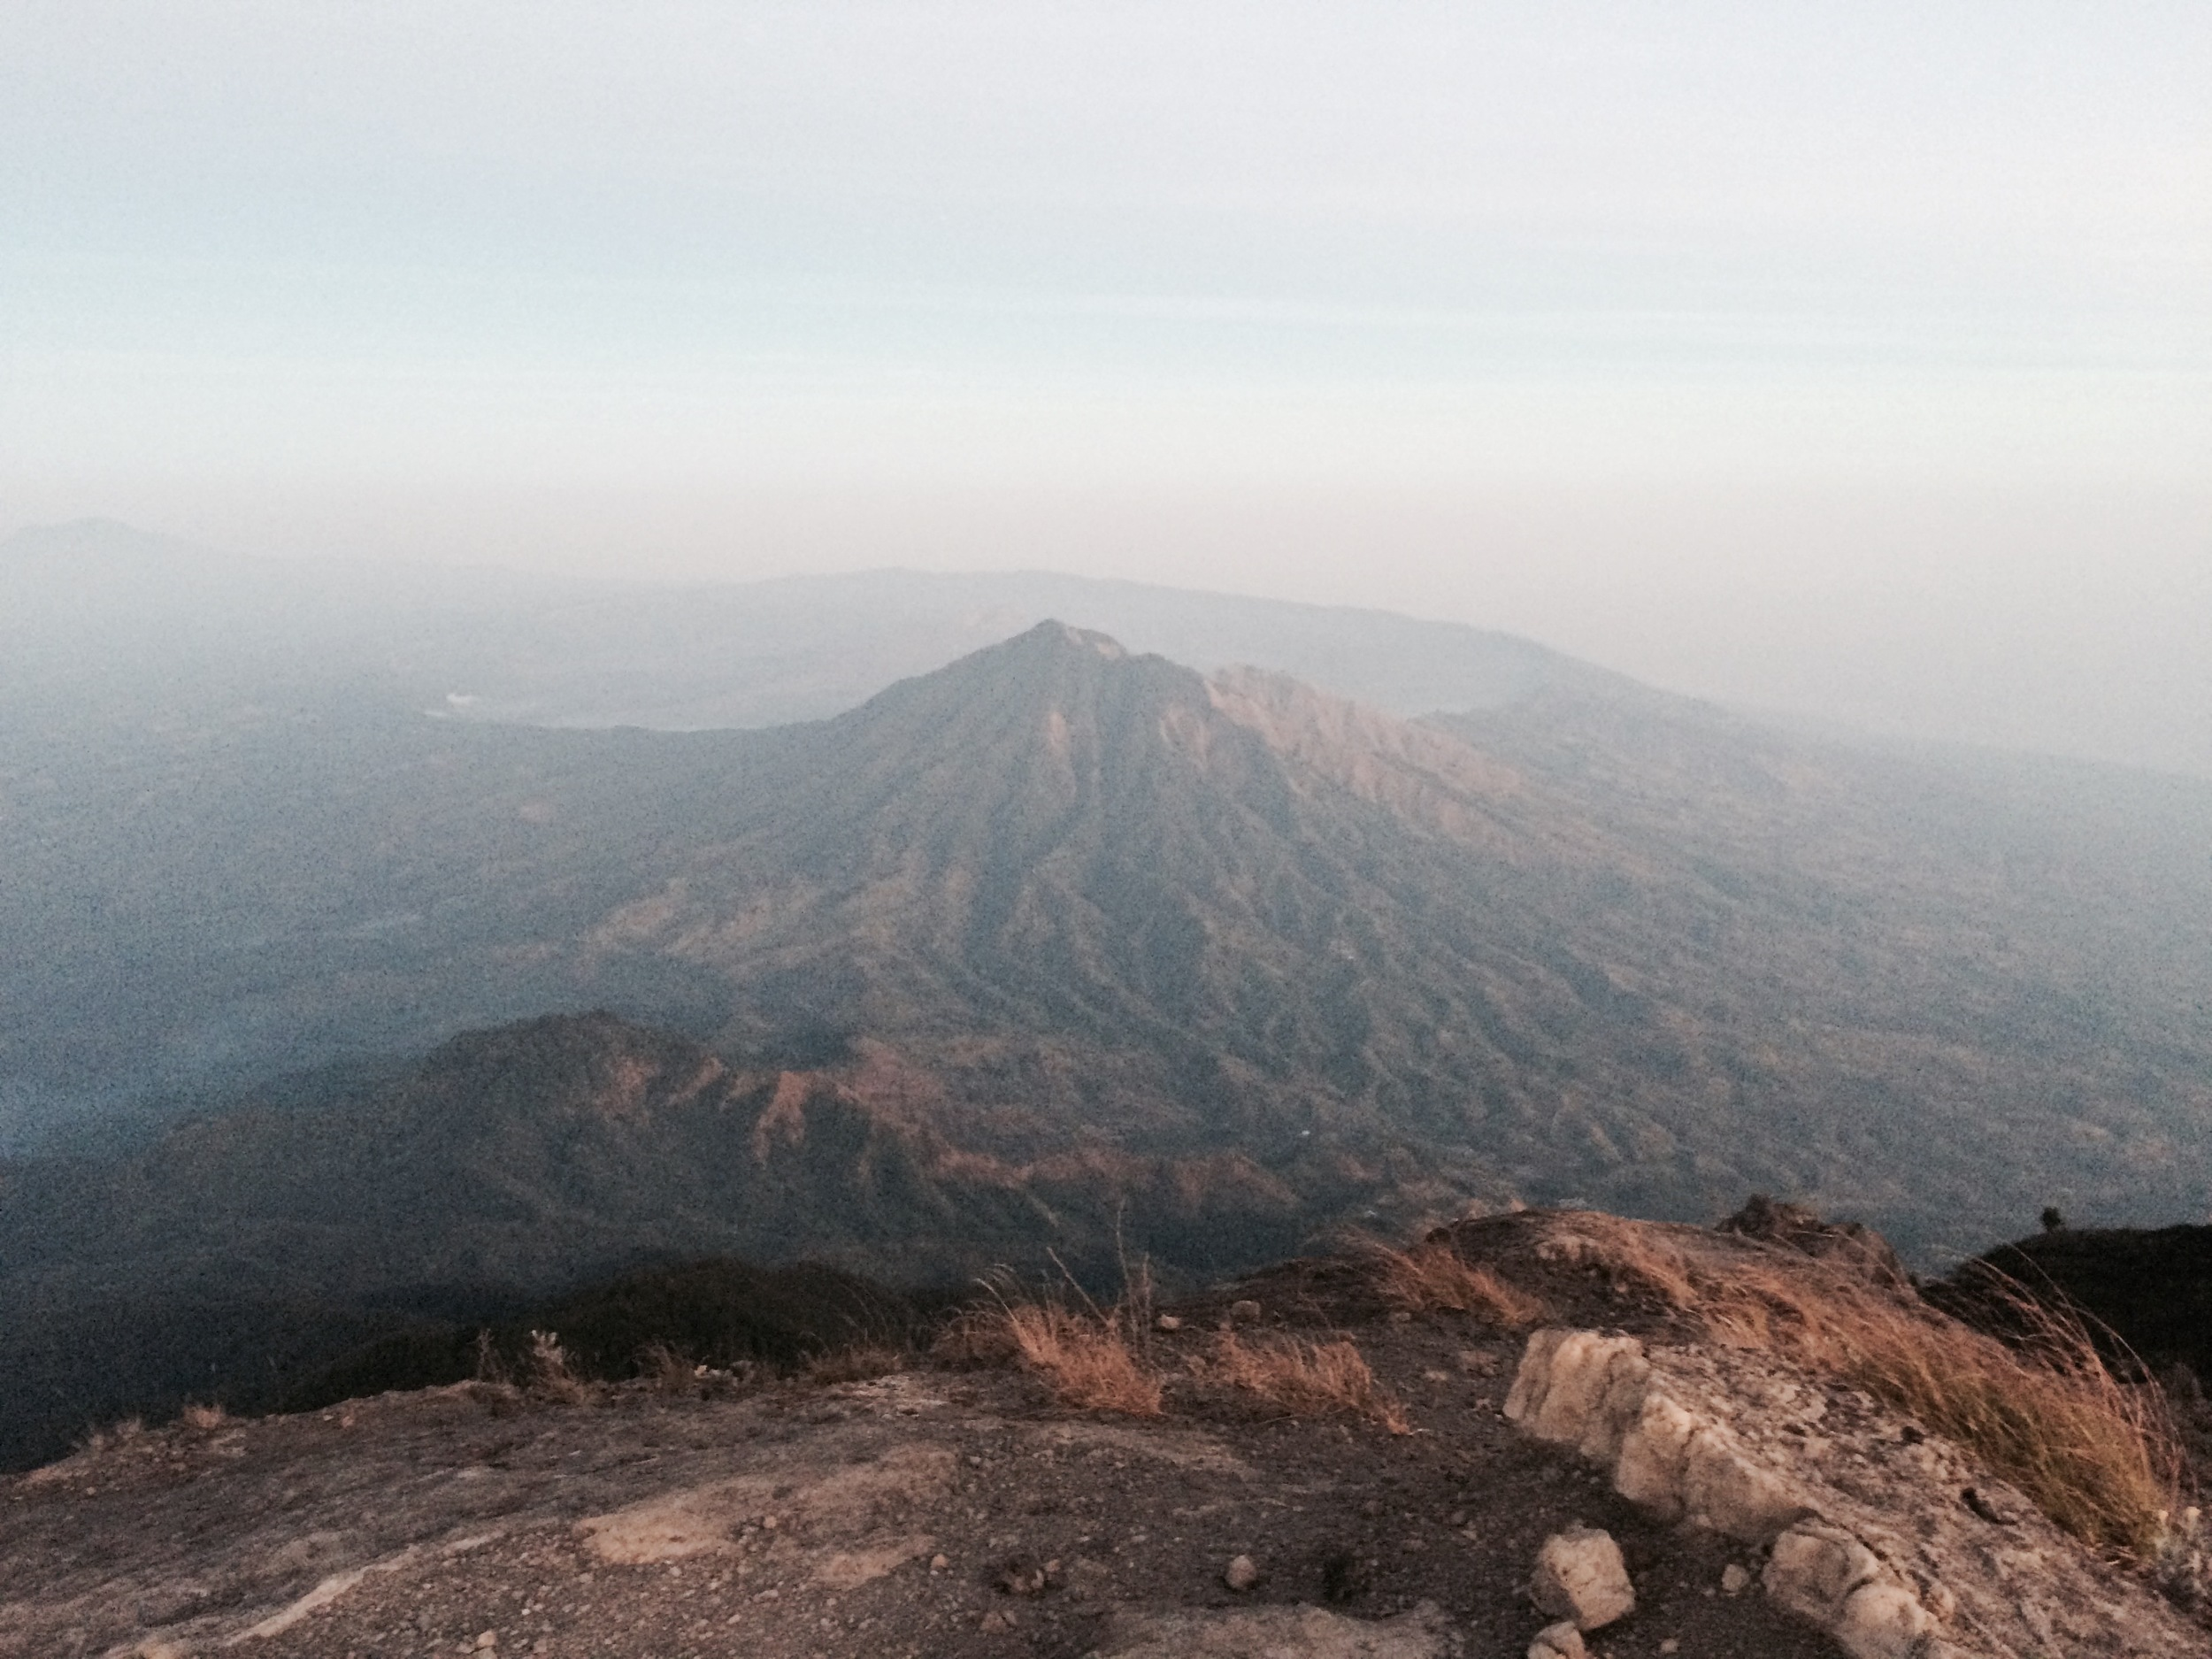 The view of Mt Abang from Mt Agung